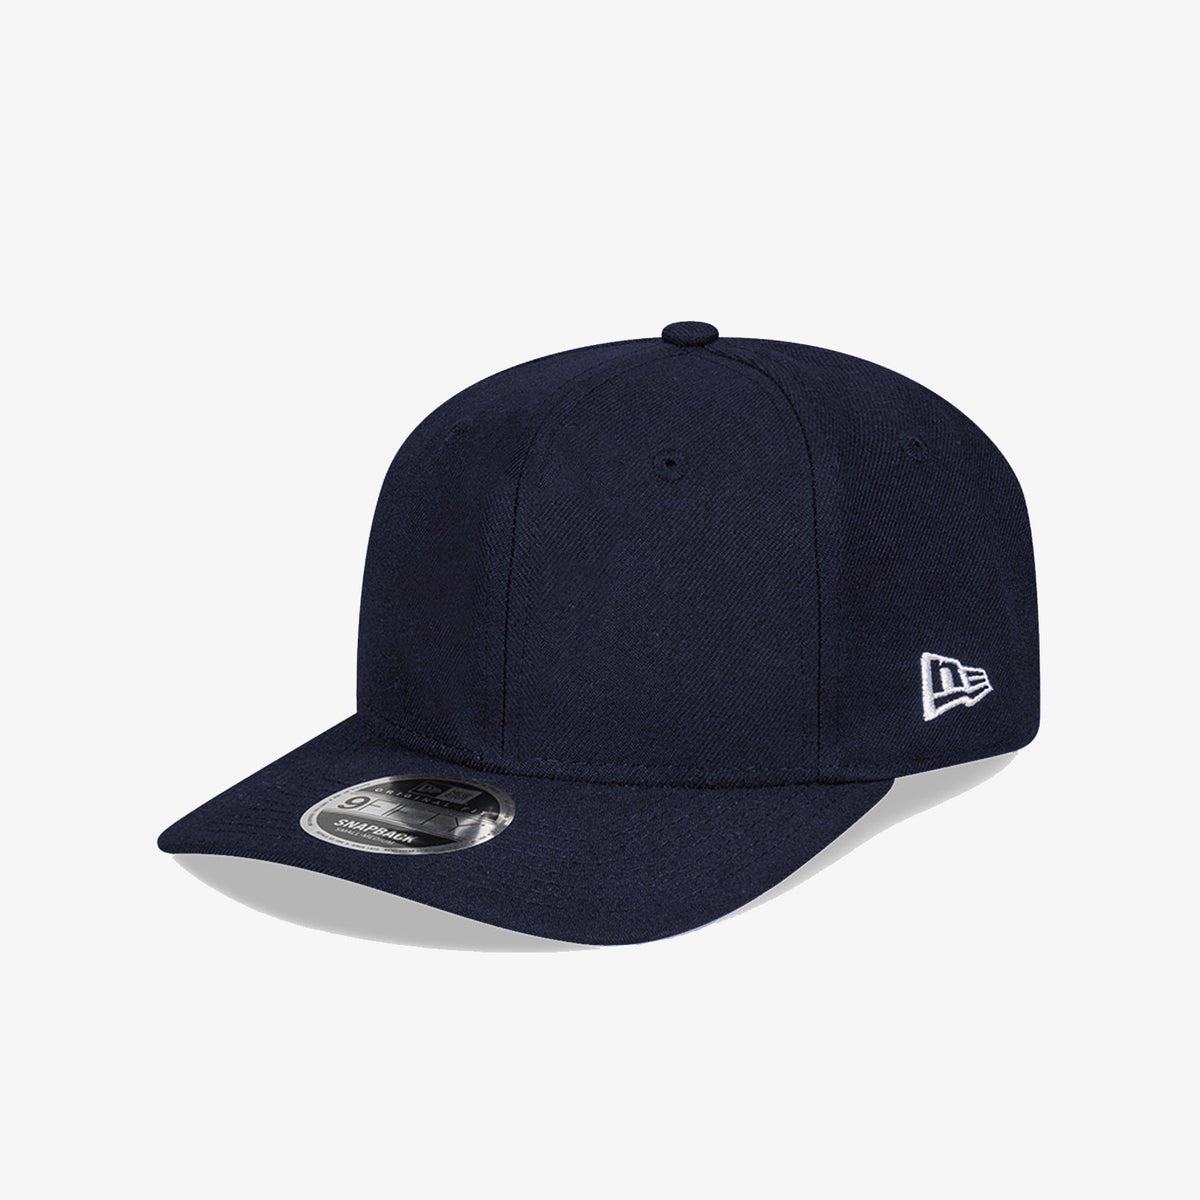 New Era 950 Pre Curved Snapback - Navy